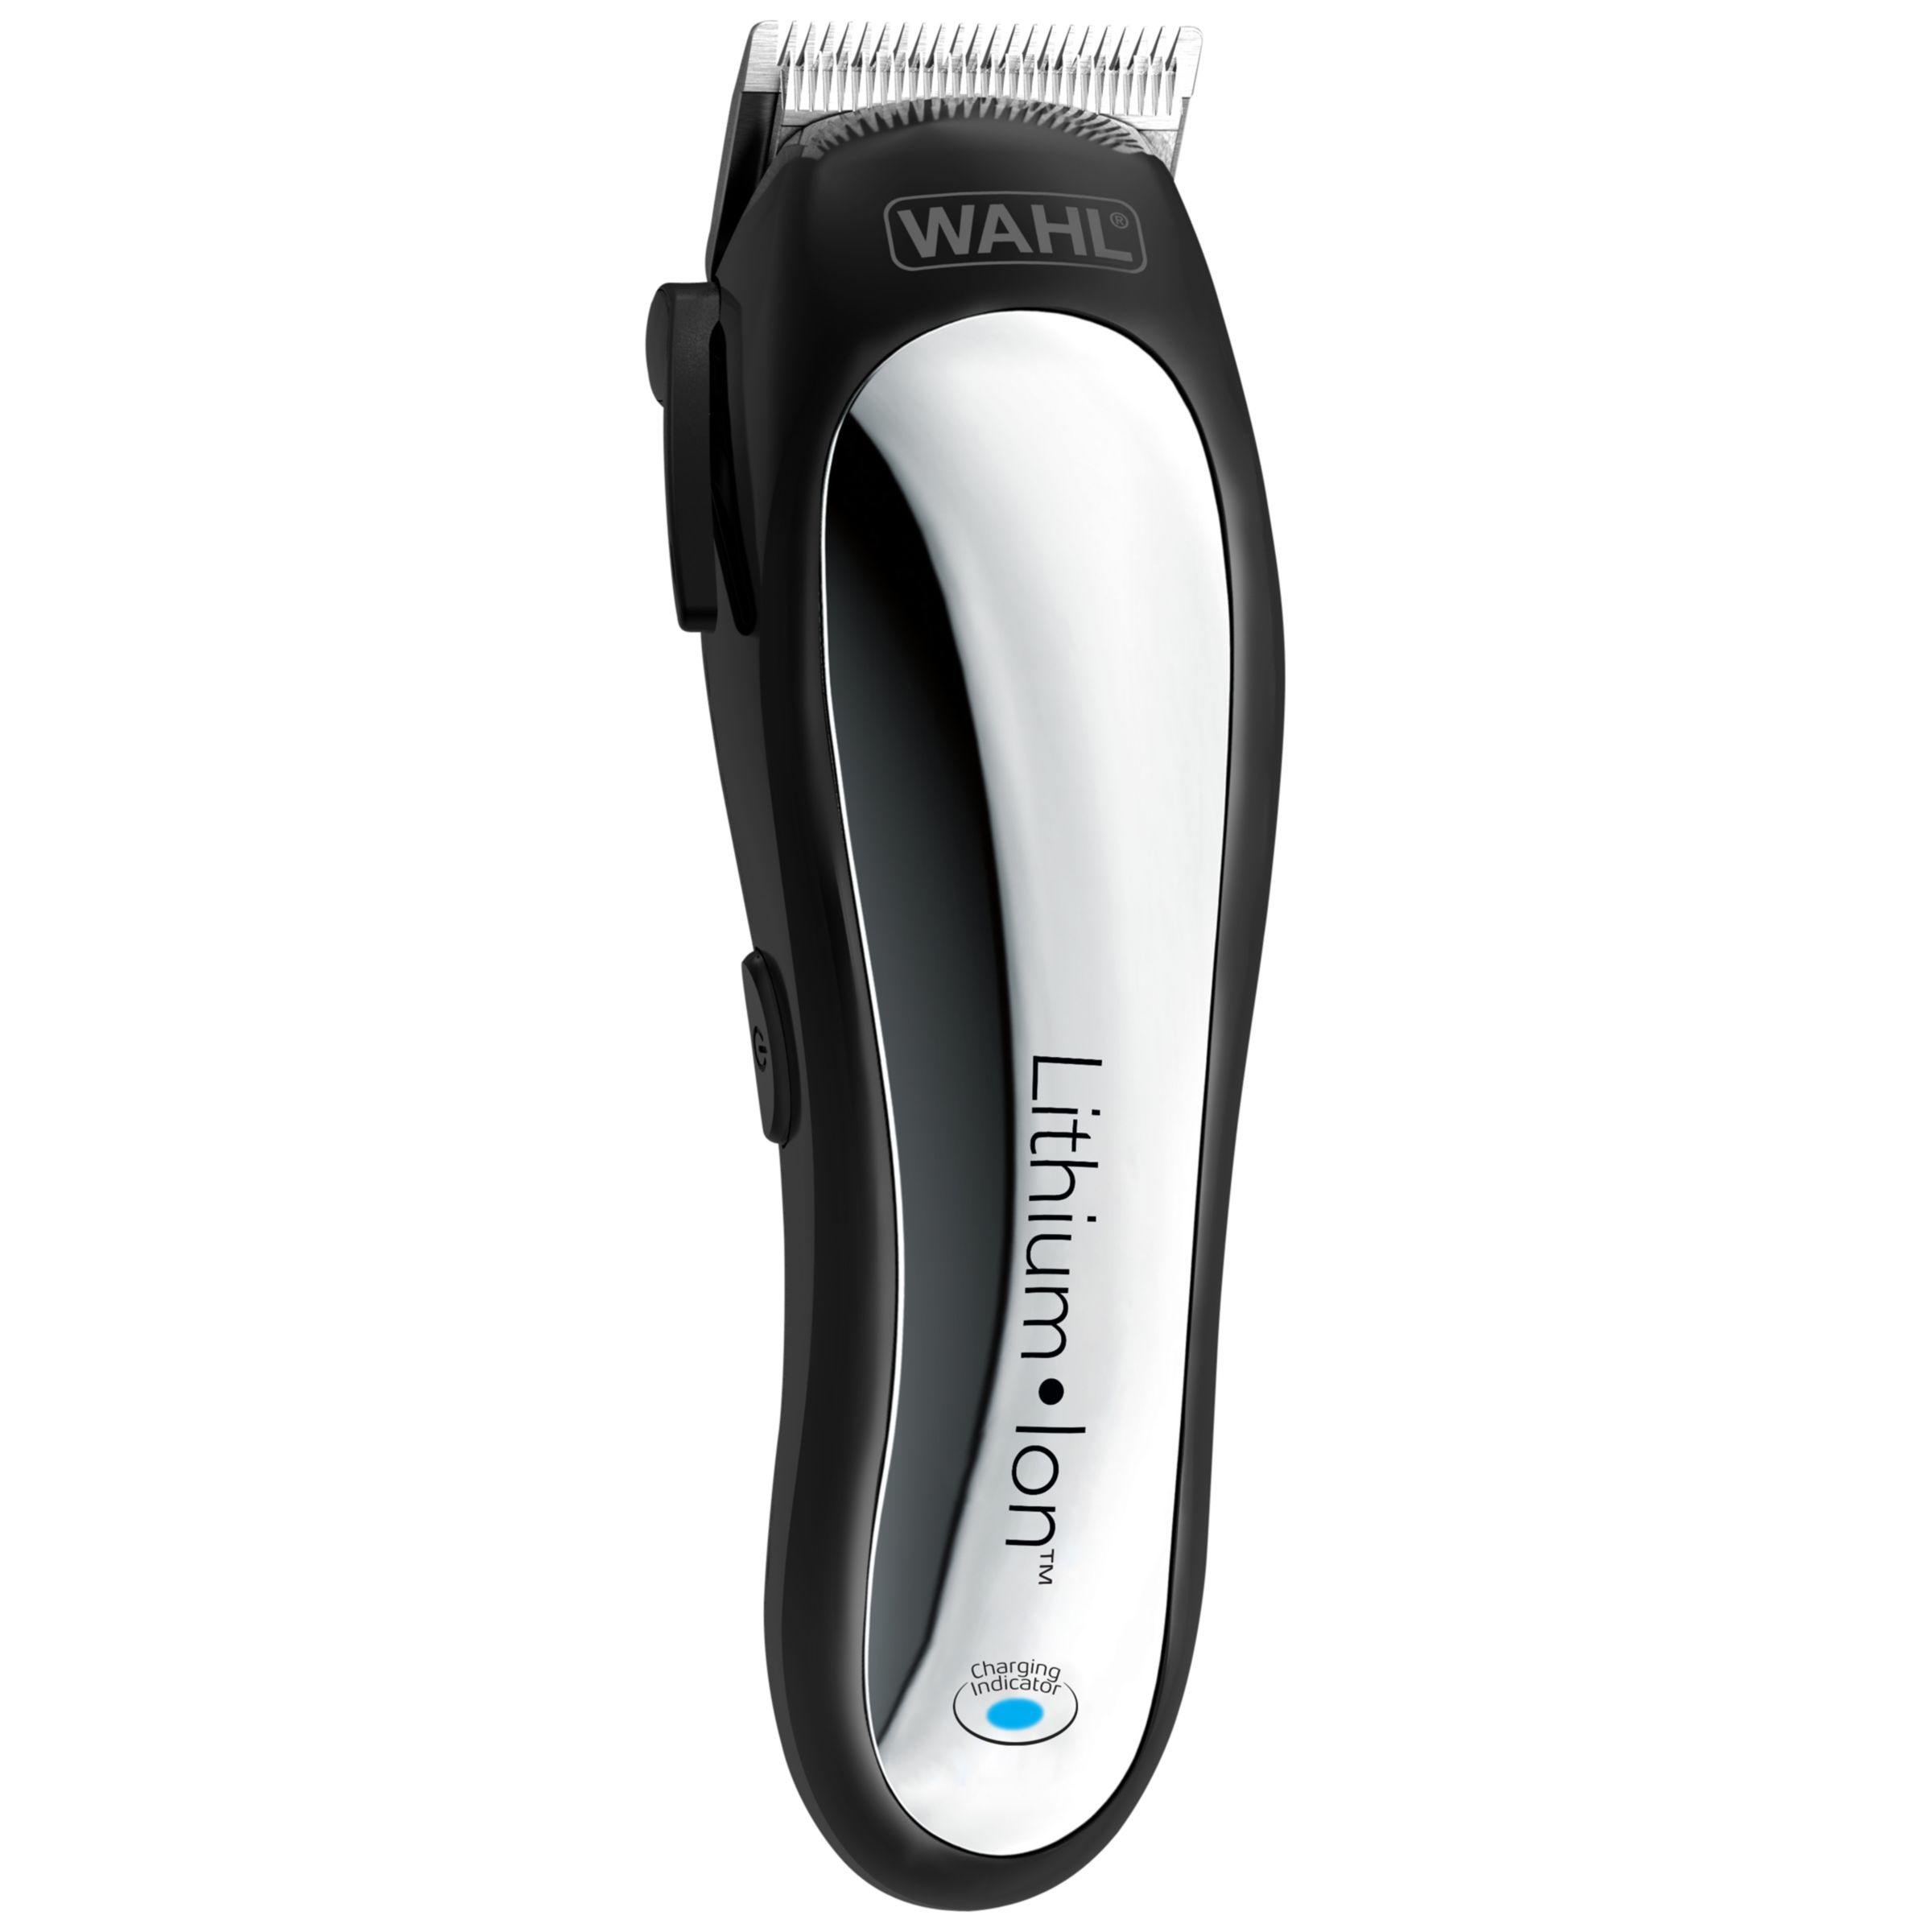 Wahl Wahl Lithium Ion Power Clipper, Silver/Black